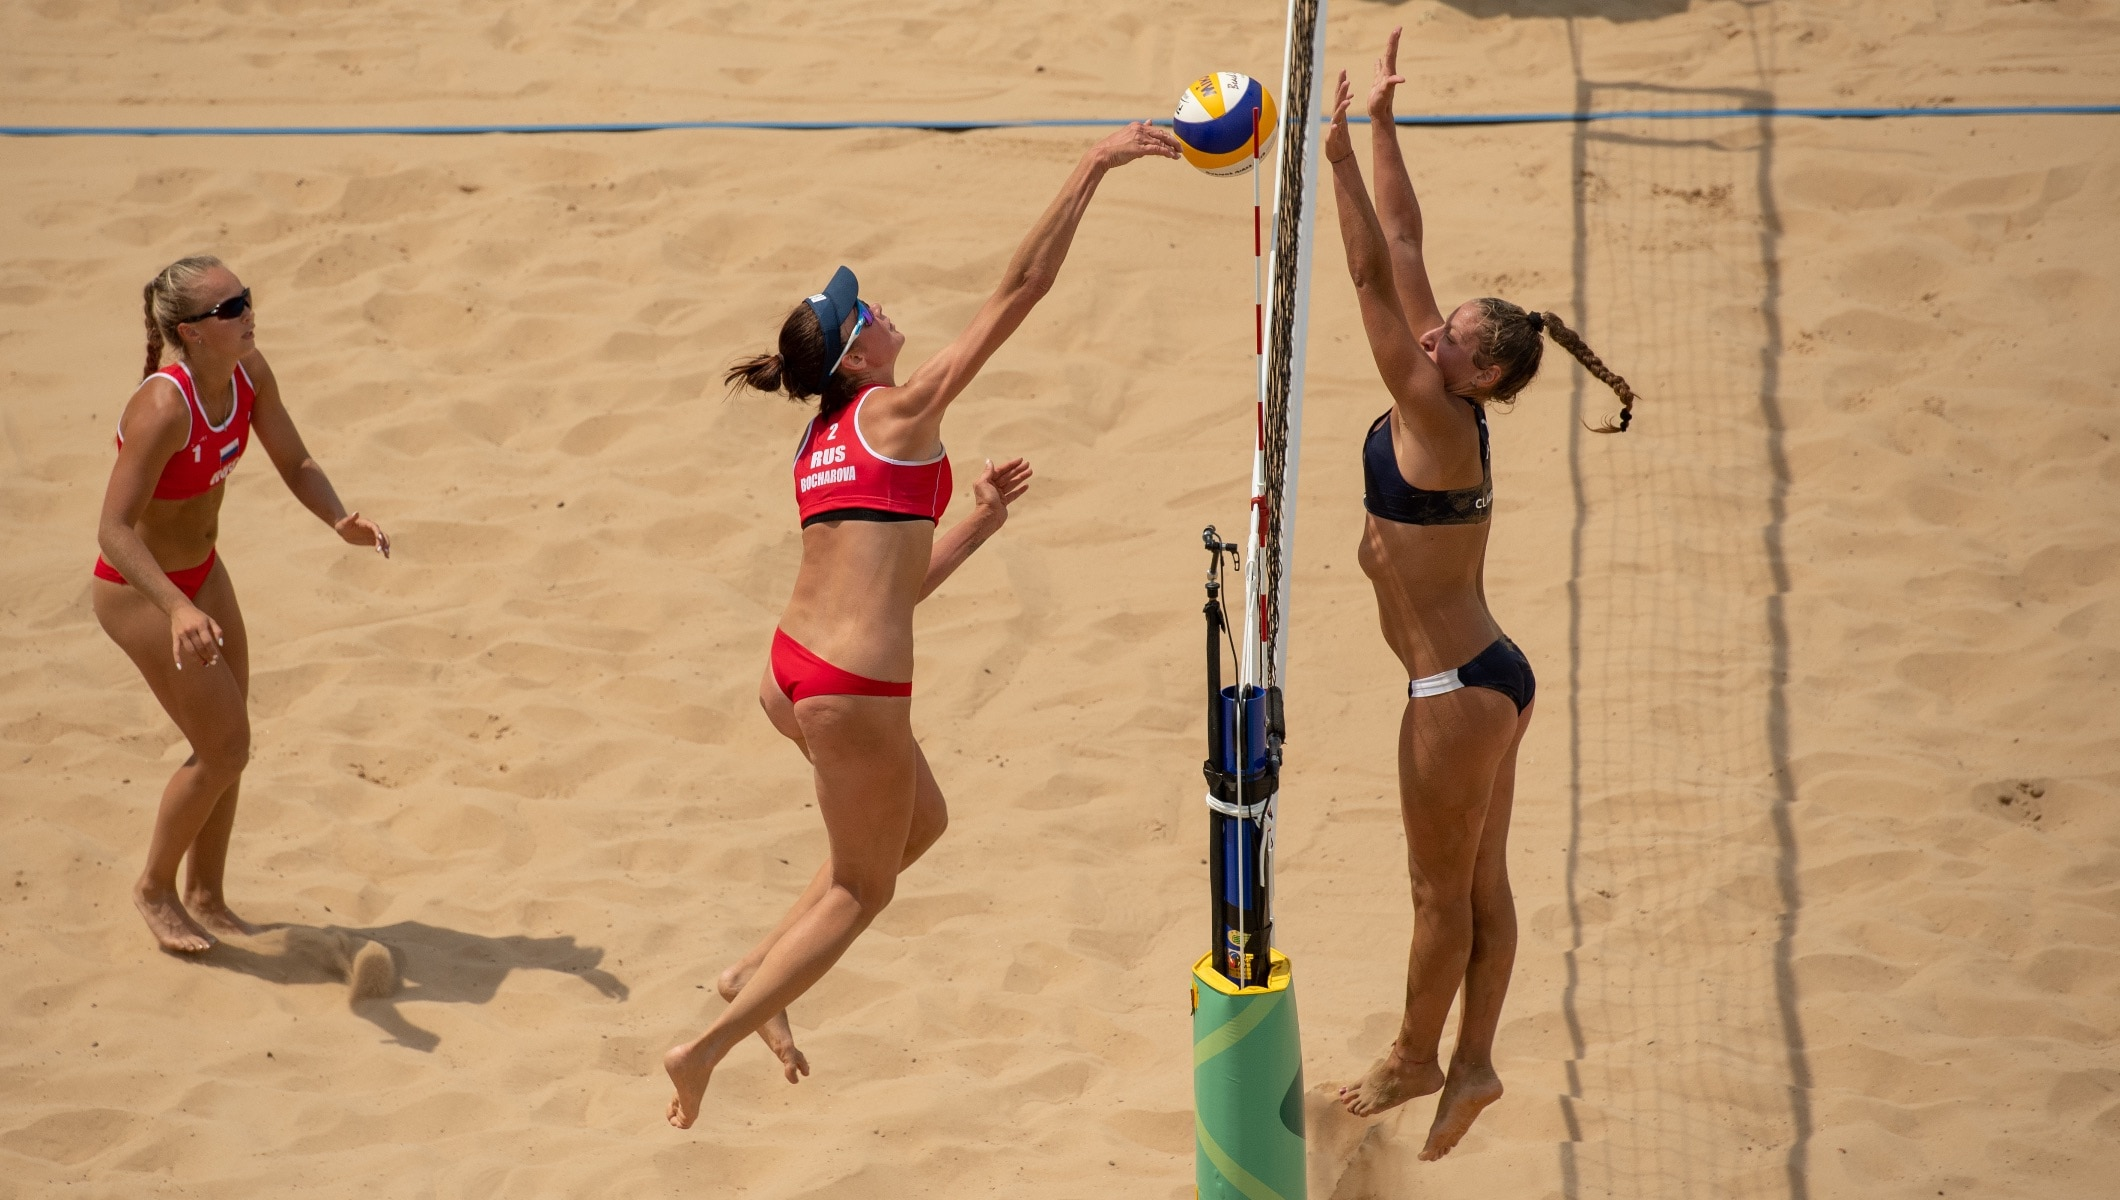 Beach volleyball golds go to Sweden and Russia - Olympic News